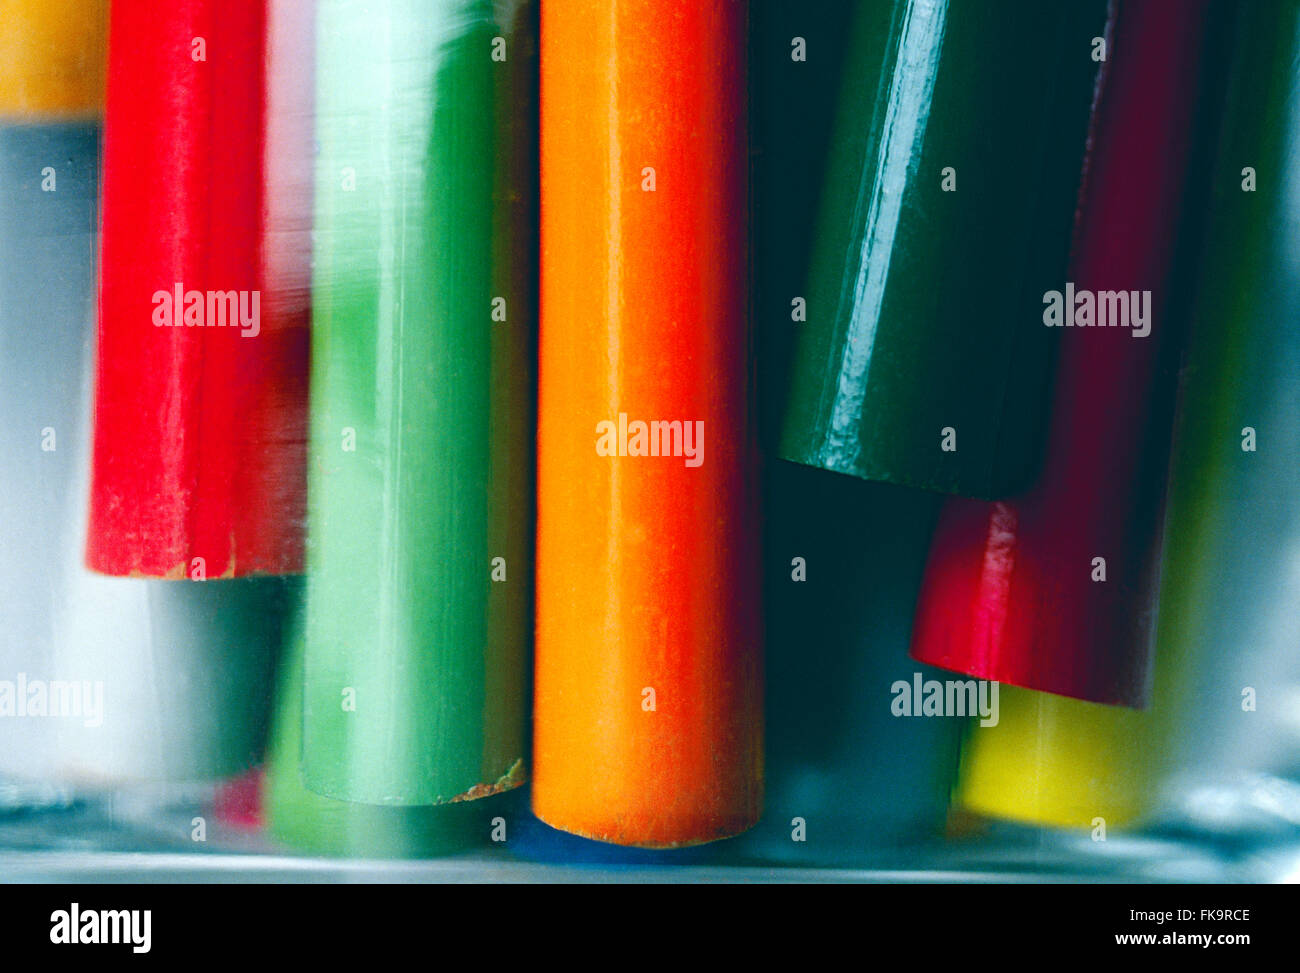 Close-up of colorful drawing pencils in a glass jar - Stock Image